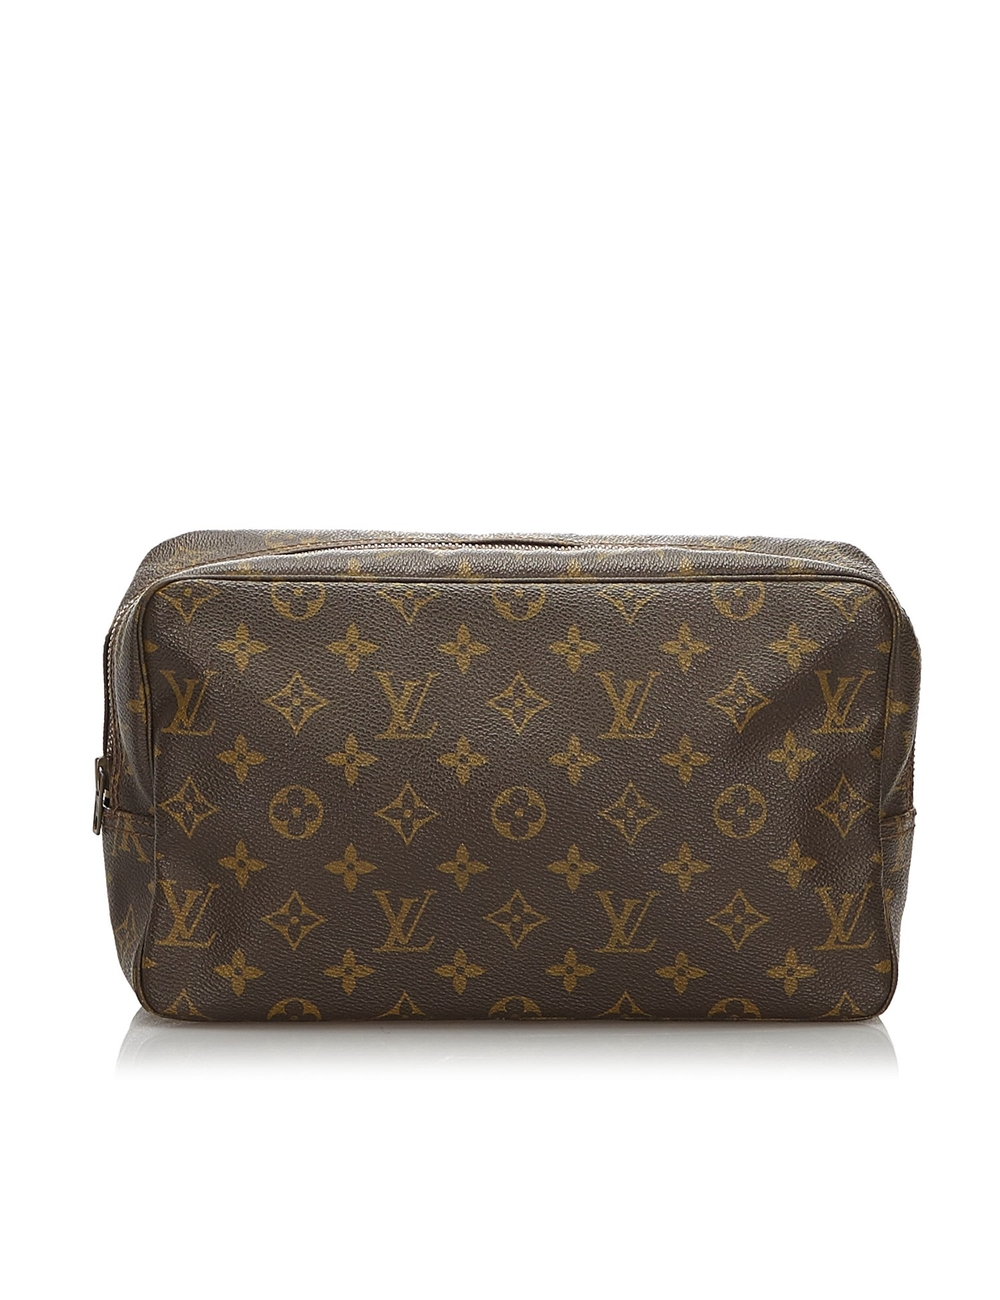 The Trousse Toilette 28 features a monogram canvas body, a top zip closure, and interior slip pocket